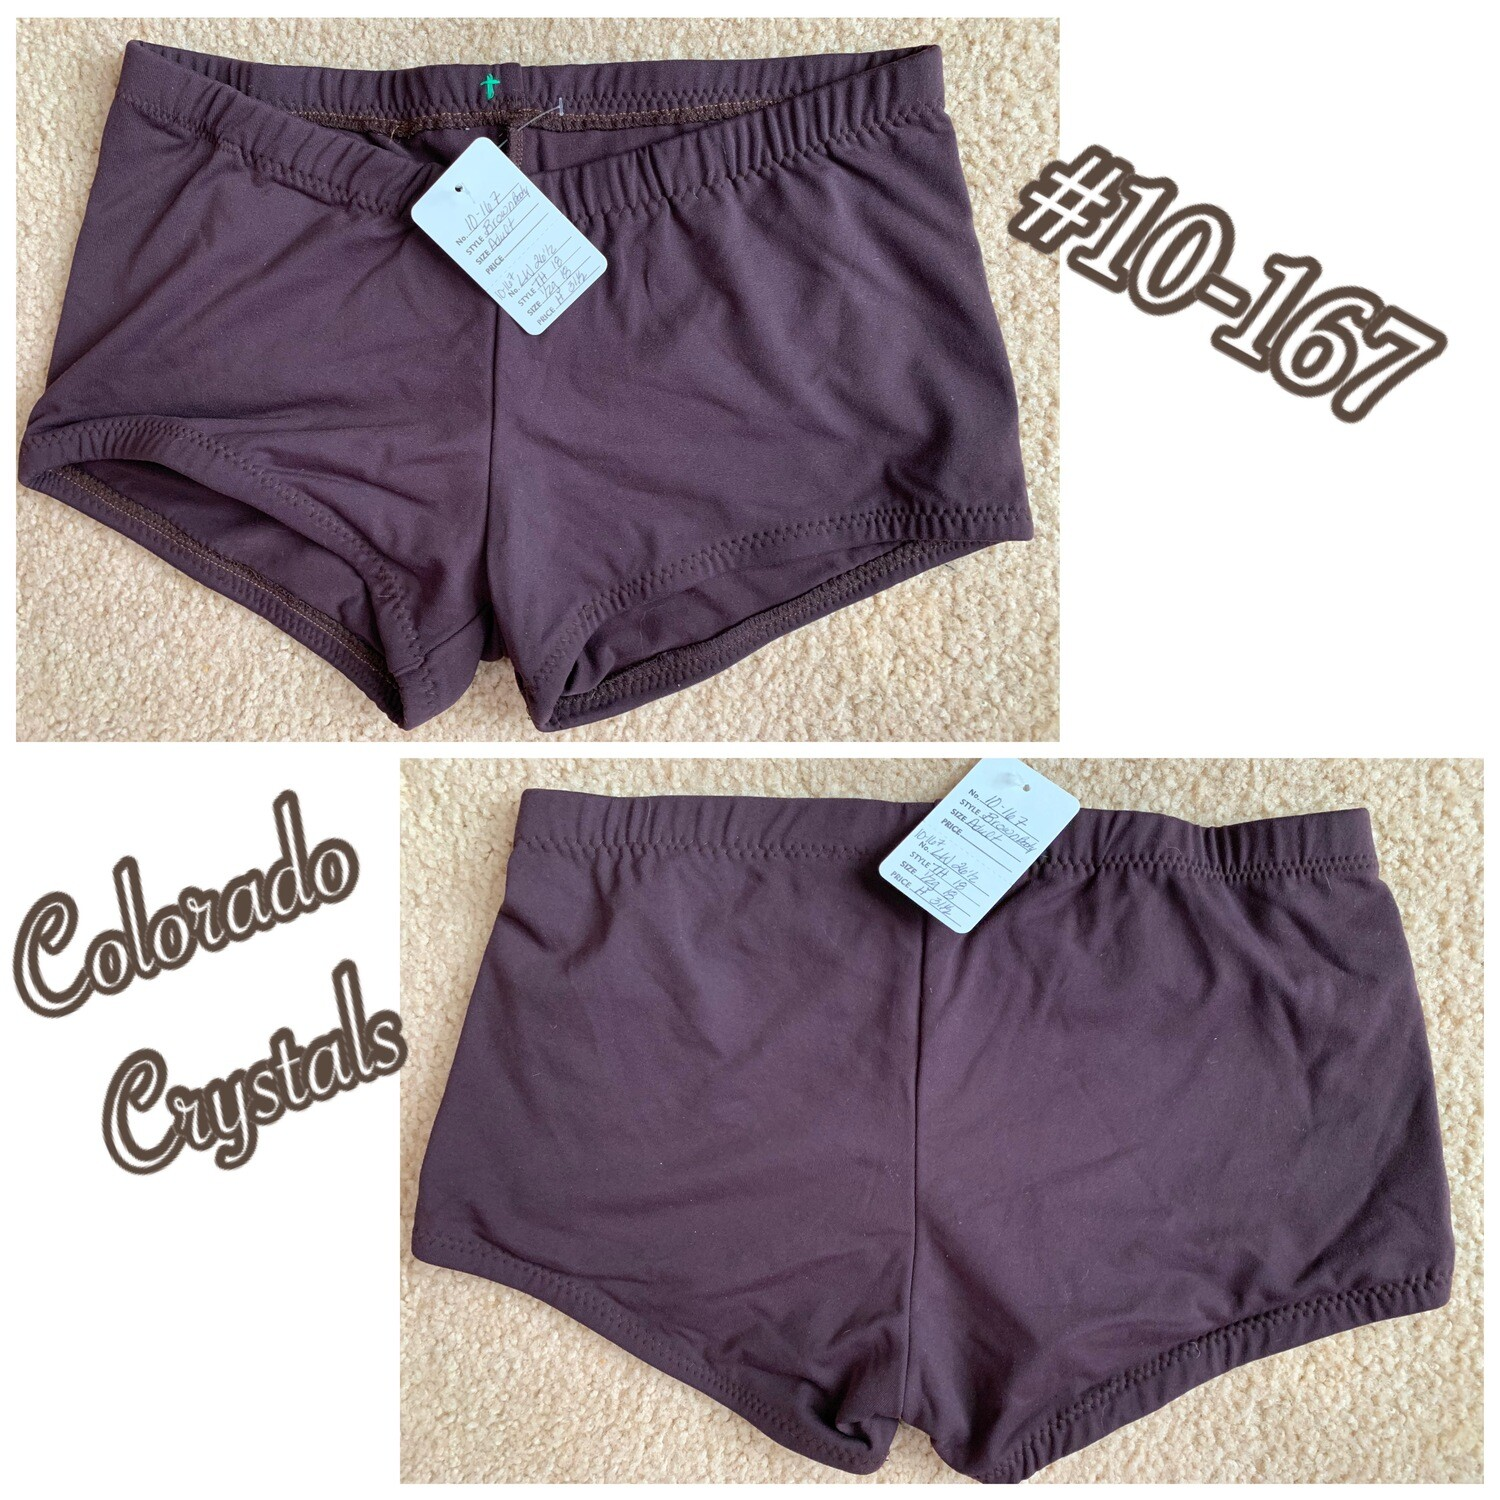 Booty Shorts Adult New Small Audition gear